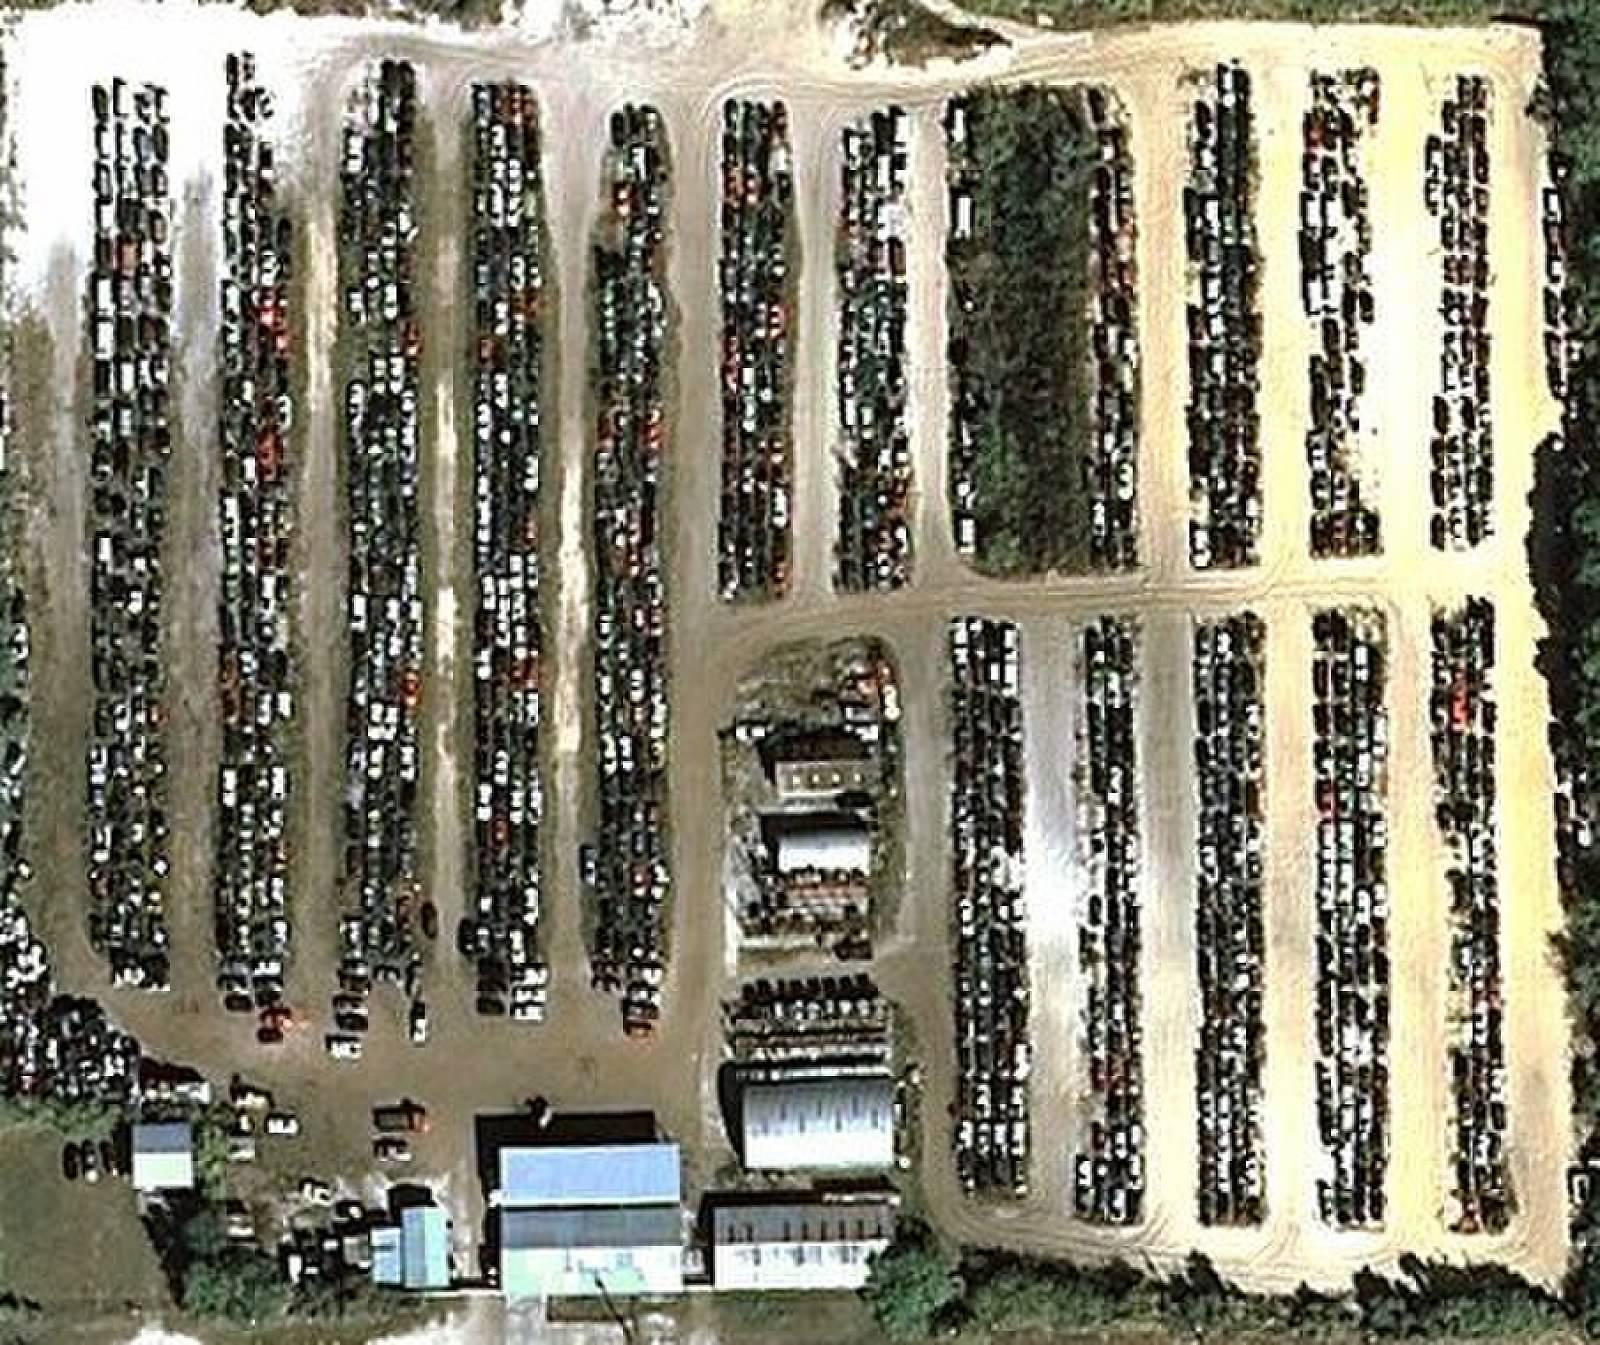 U pull it self service salvage yard central florida u pull it aerial view of salvage yard do it yourself yard solutioingenieria Gallery